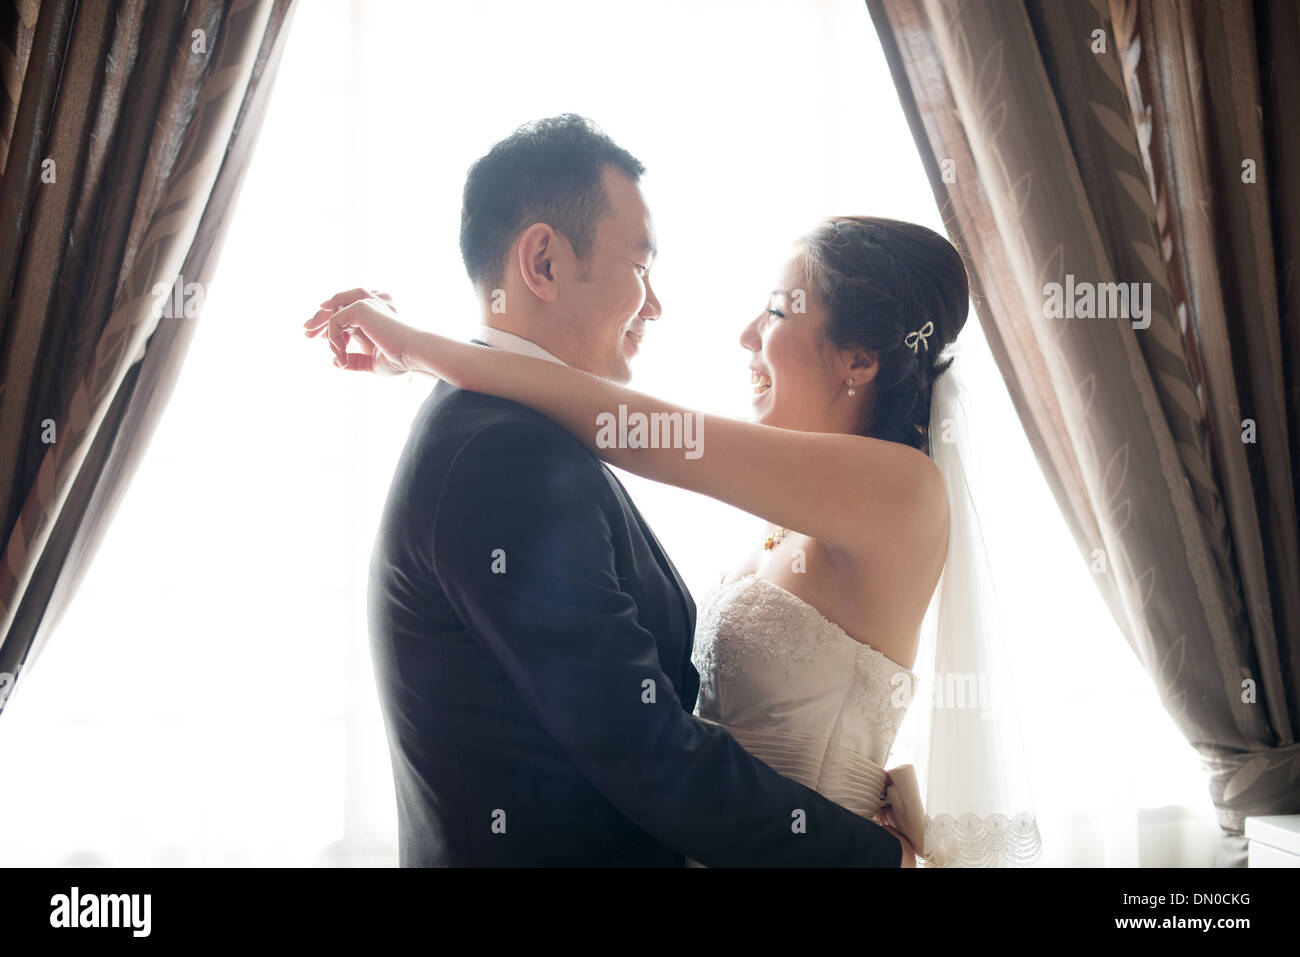 Romantic Asian Chinese wedding couple. Bride and groom dancing on wedding day. - Stock Image